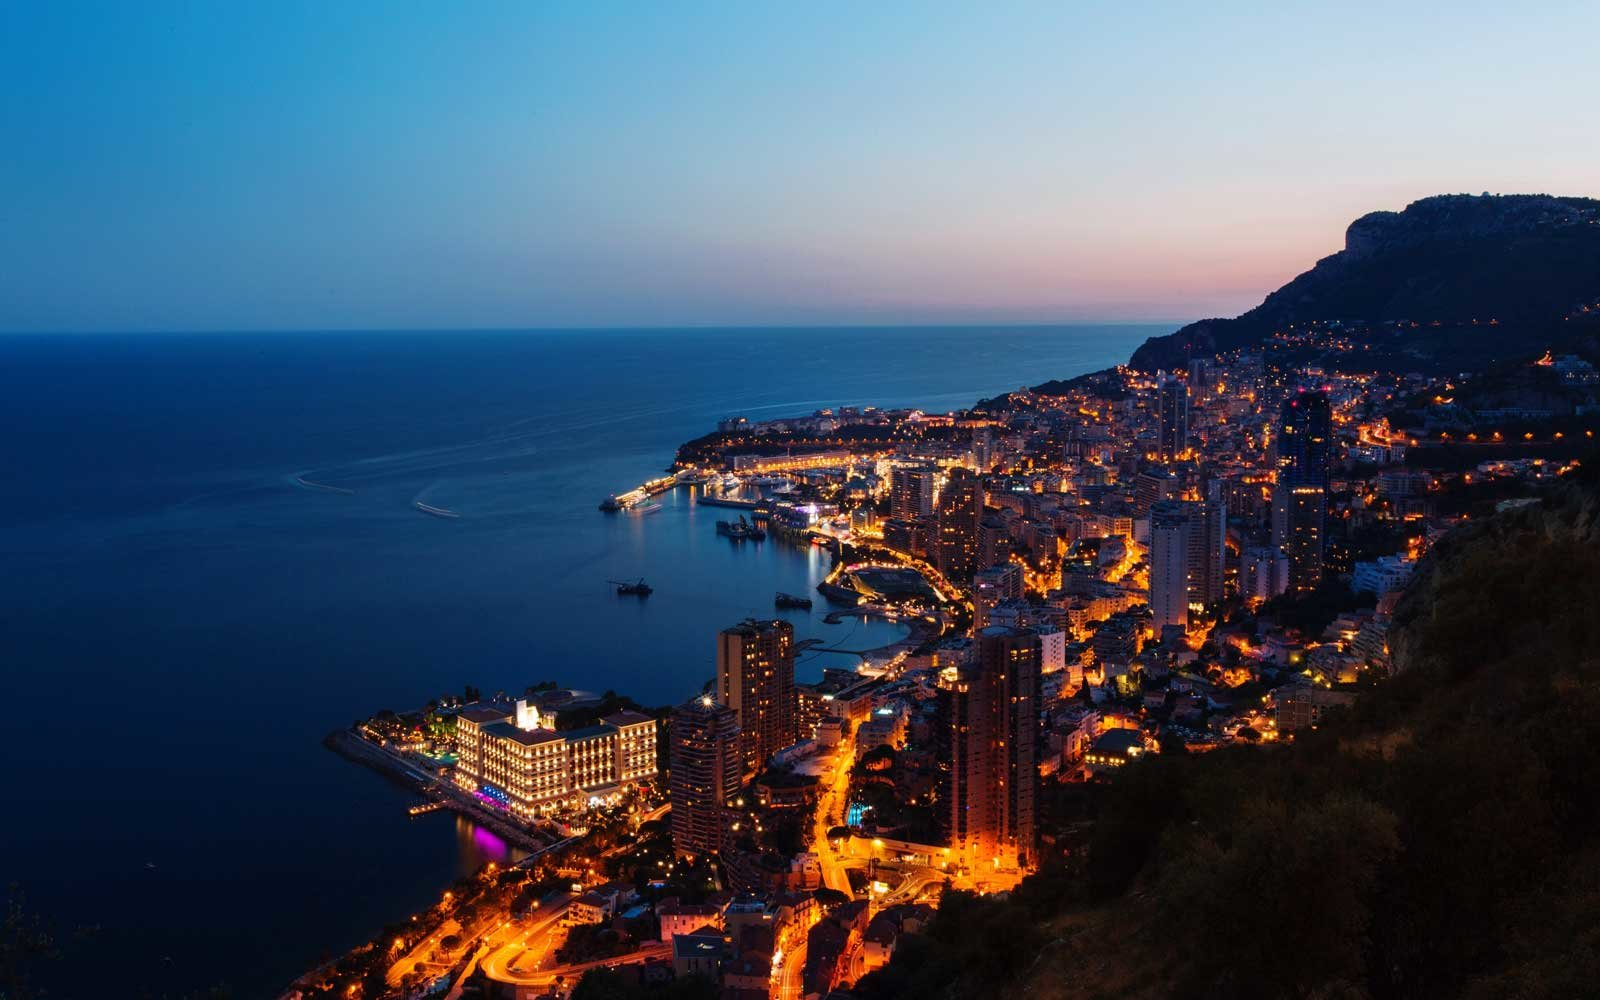 Coast of Monaco at dusk